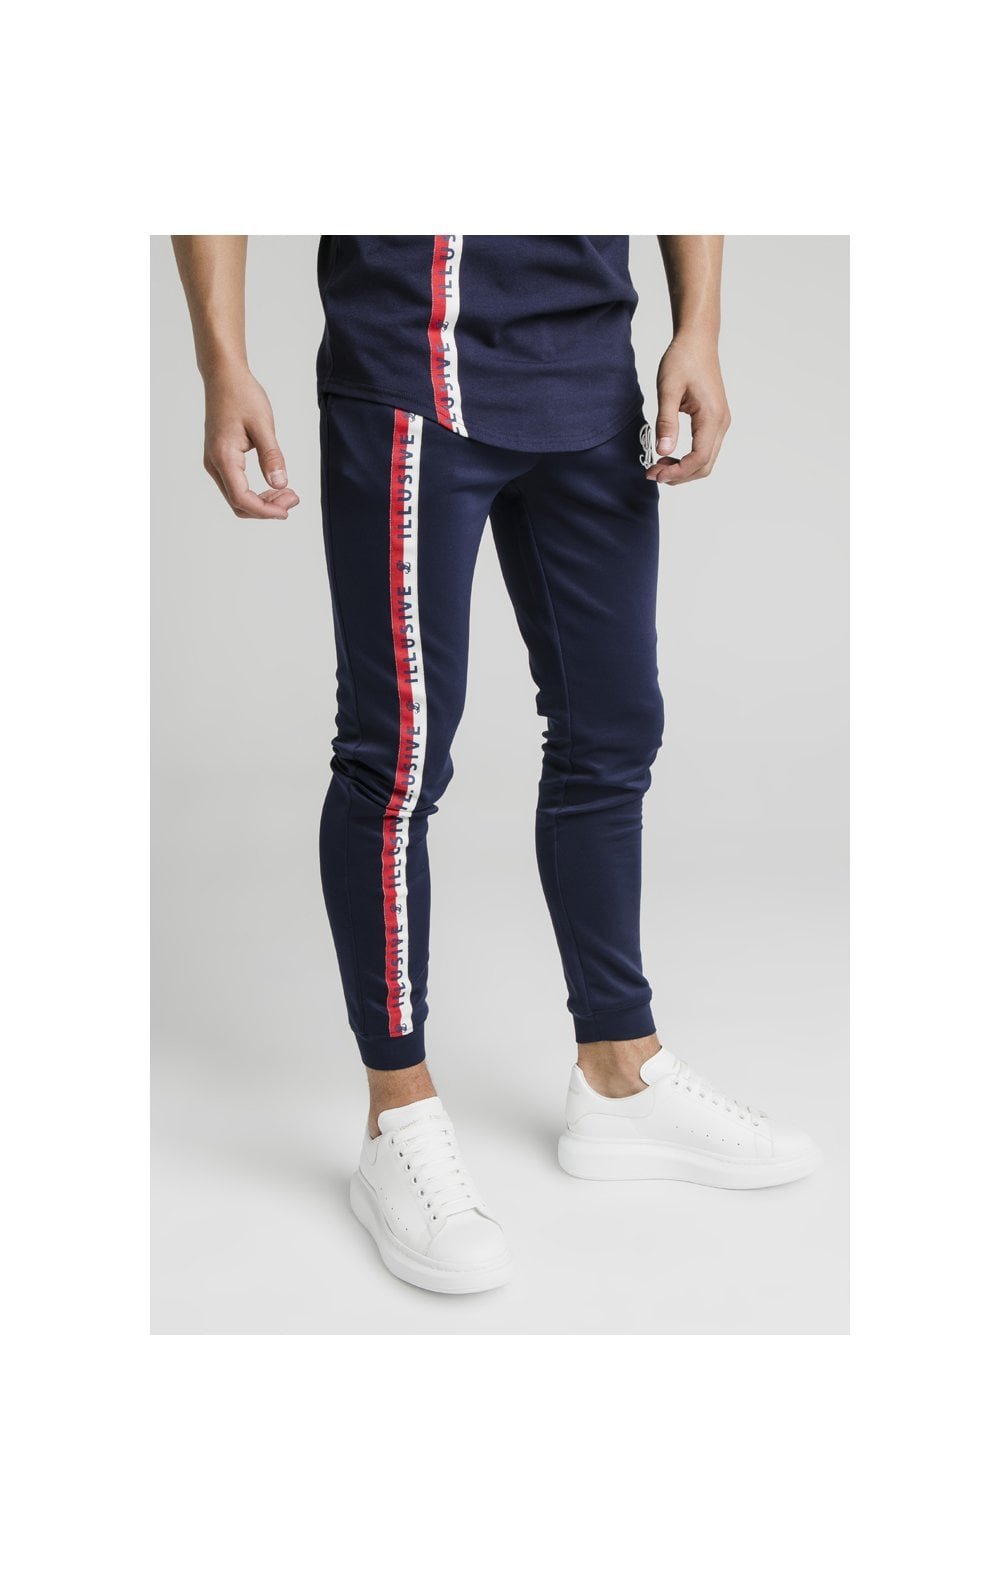 Illusive London Side Tape Joggers - Navy (3)